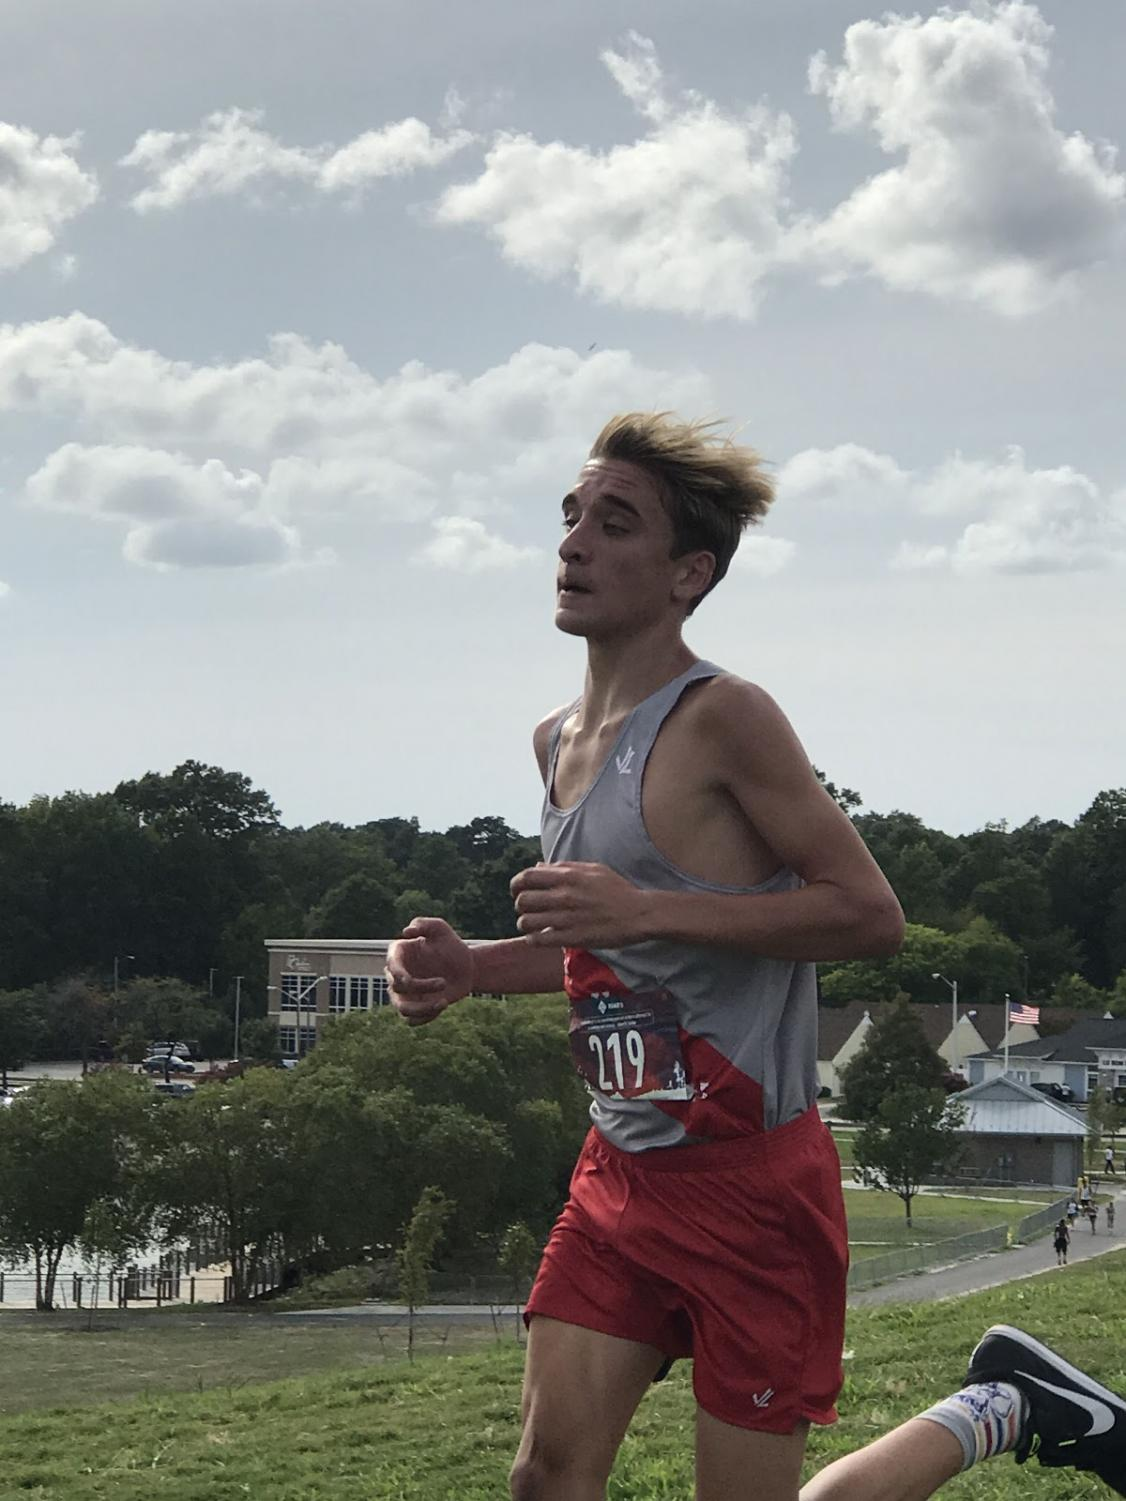 Caption%3A+Zach+ran+with+the+rest+of+the+Cross+Country+team+on+Wednesday%2C+September+4%2C+2019%2C+at+Mount+Trashmore%2C+finishing+the+race+in+4th+place.